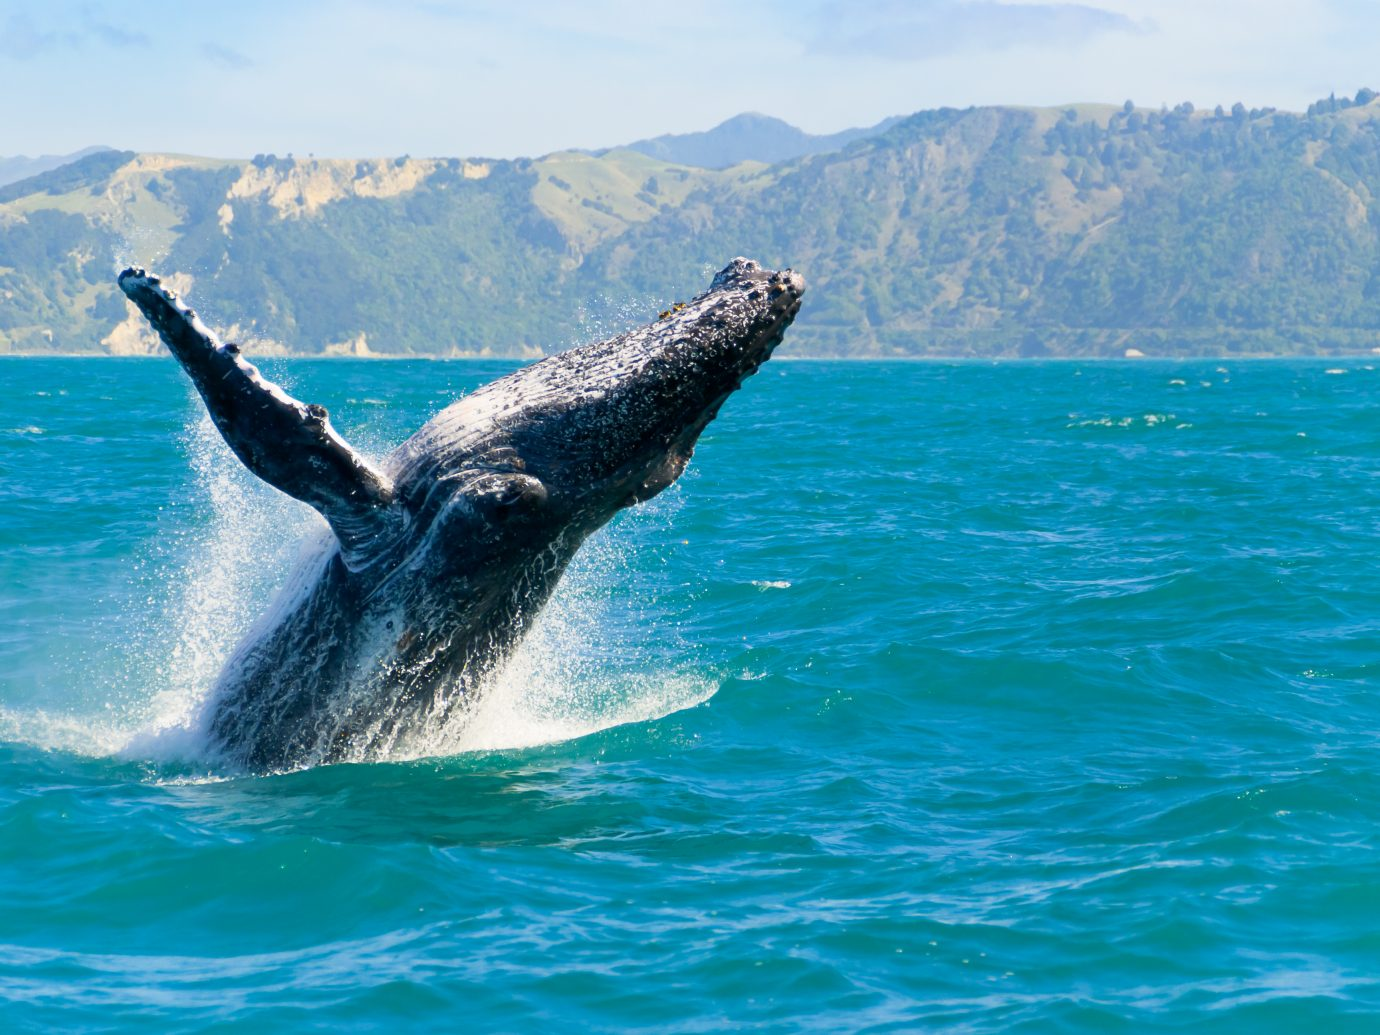 humpback whale playing in water captured from Whale whatching boat